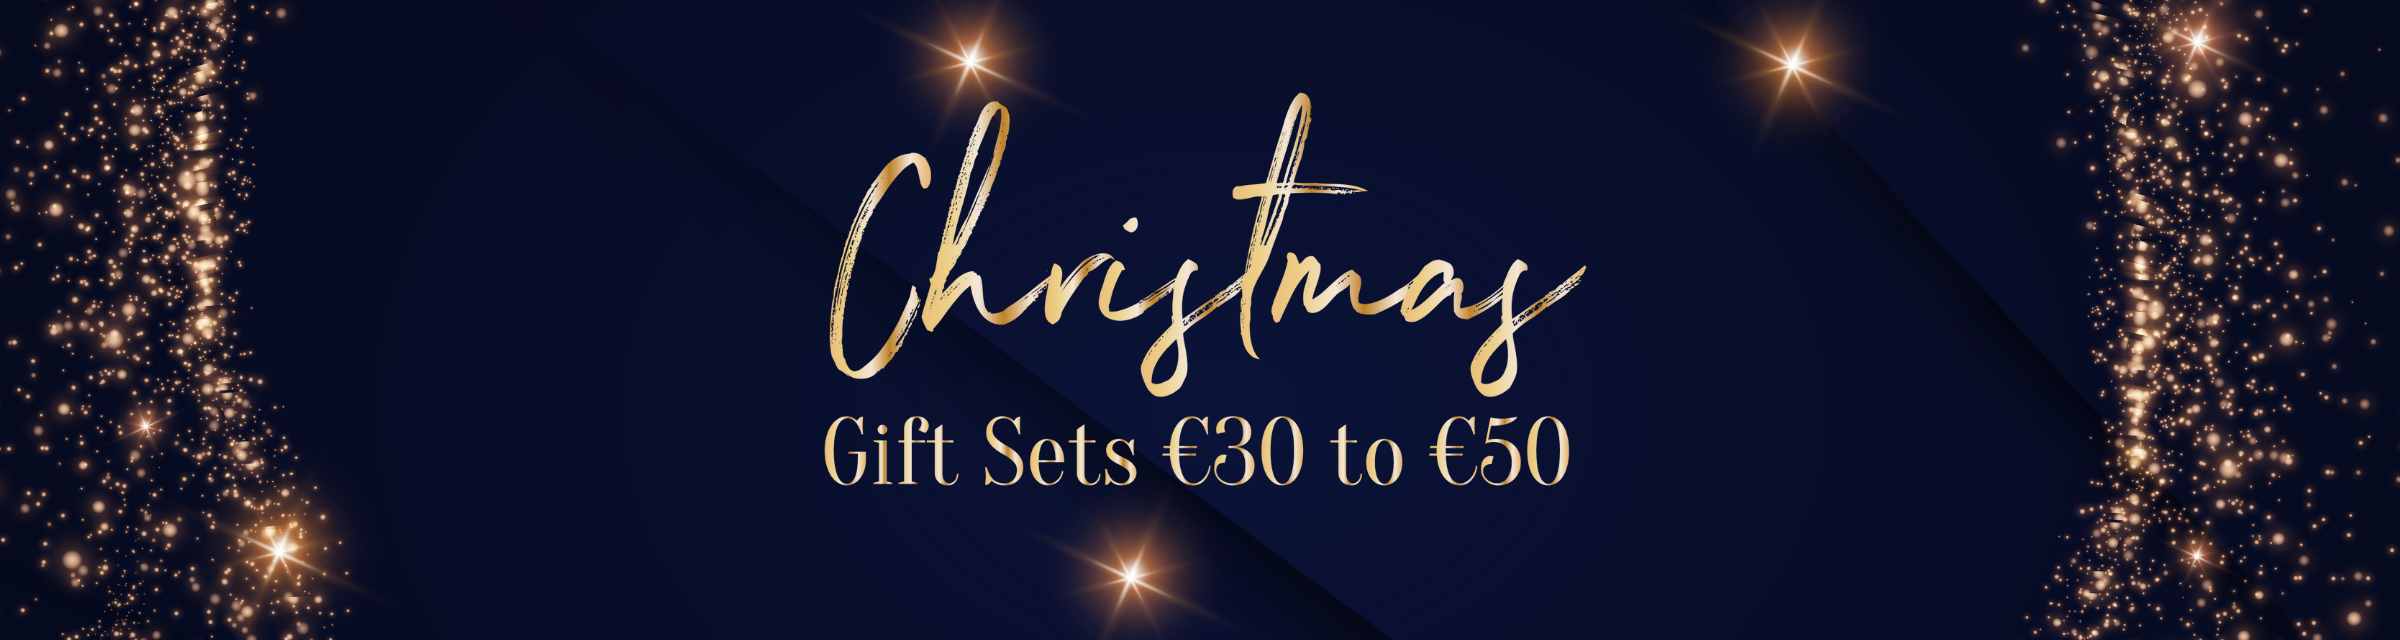 Gift Sets €30 to €50